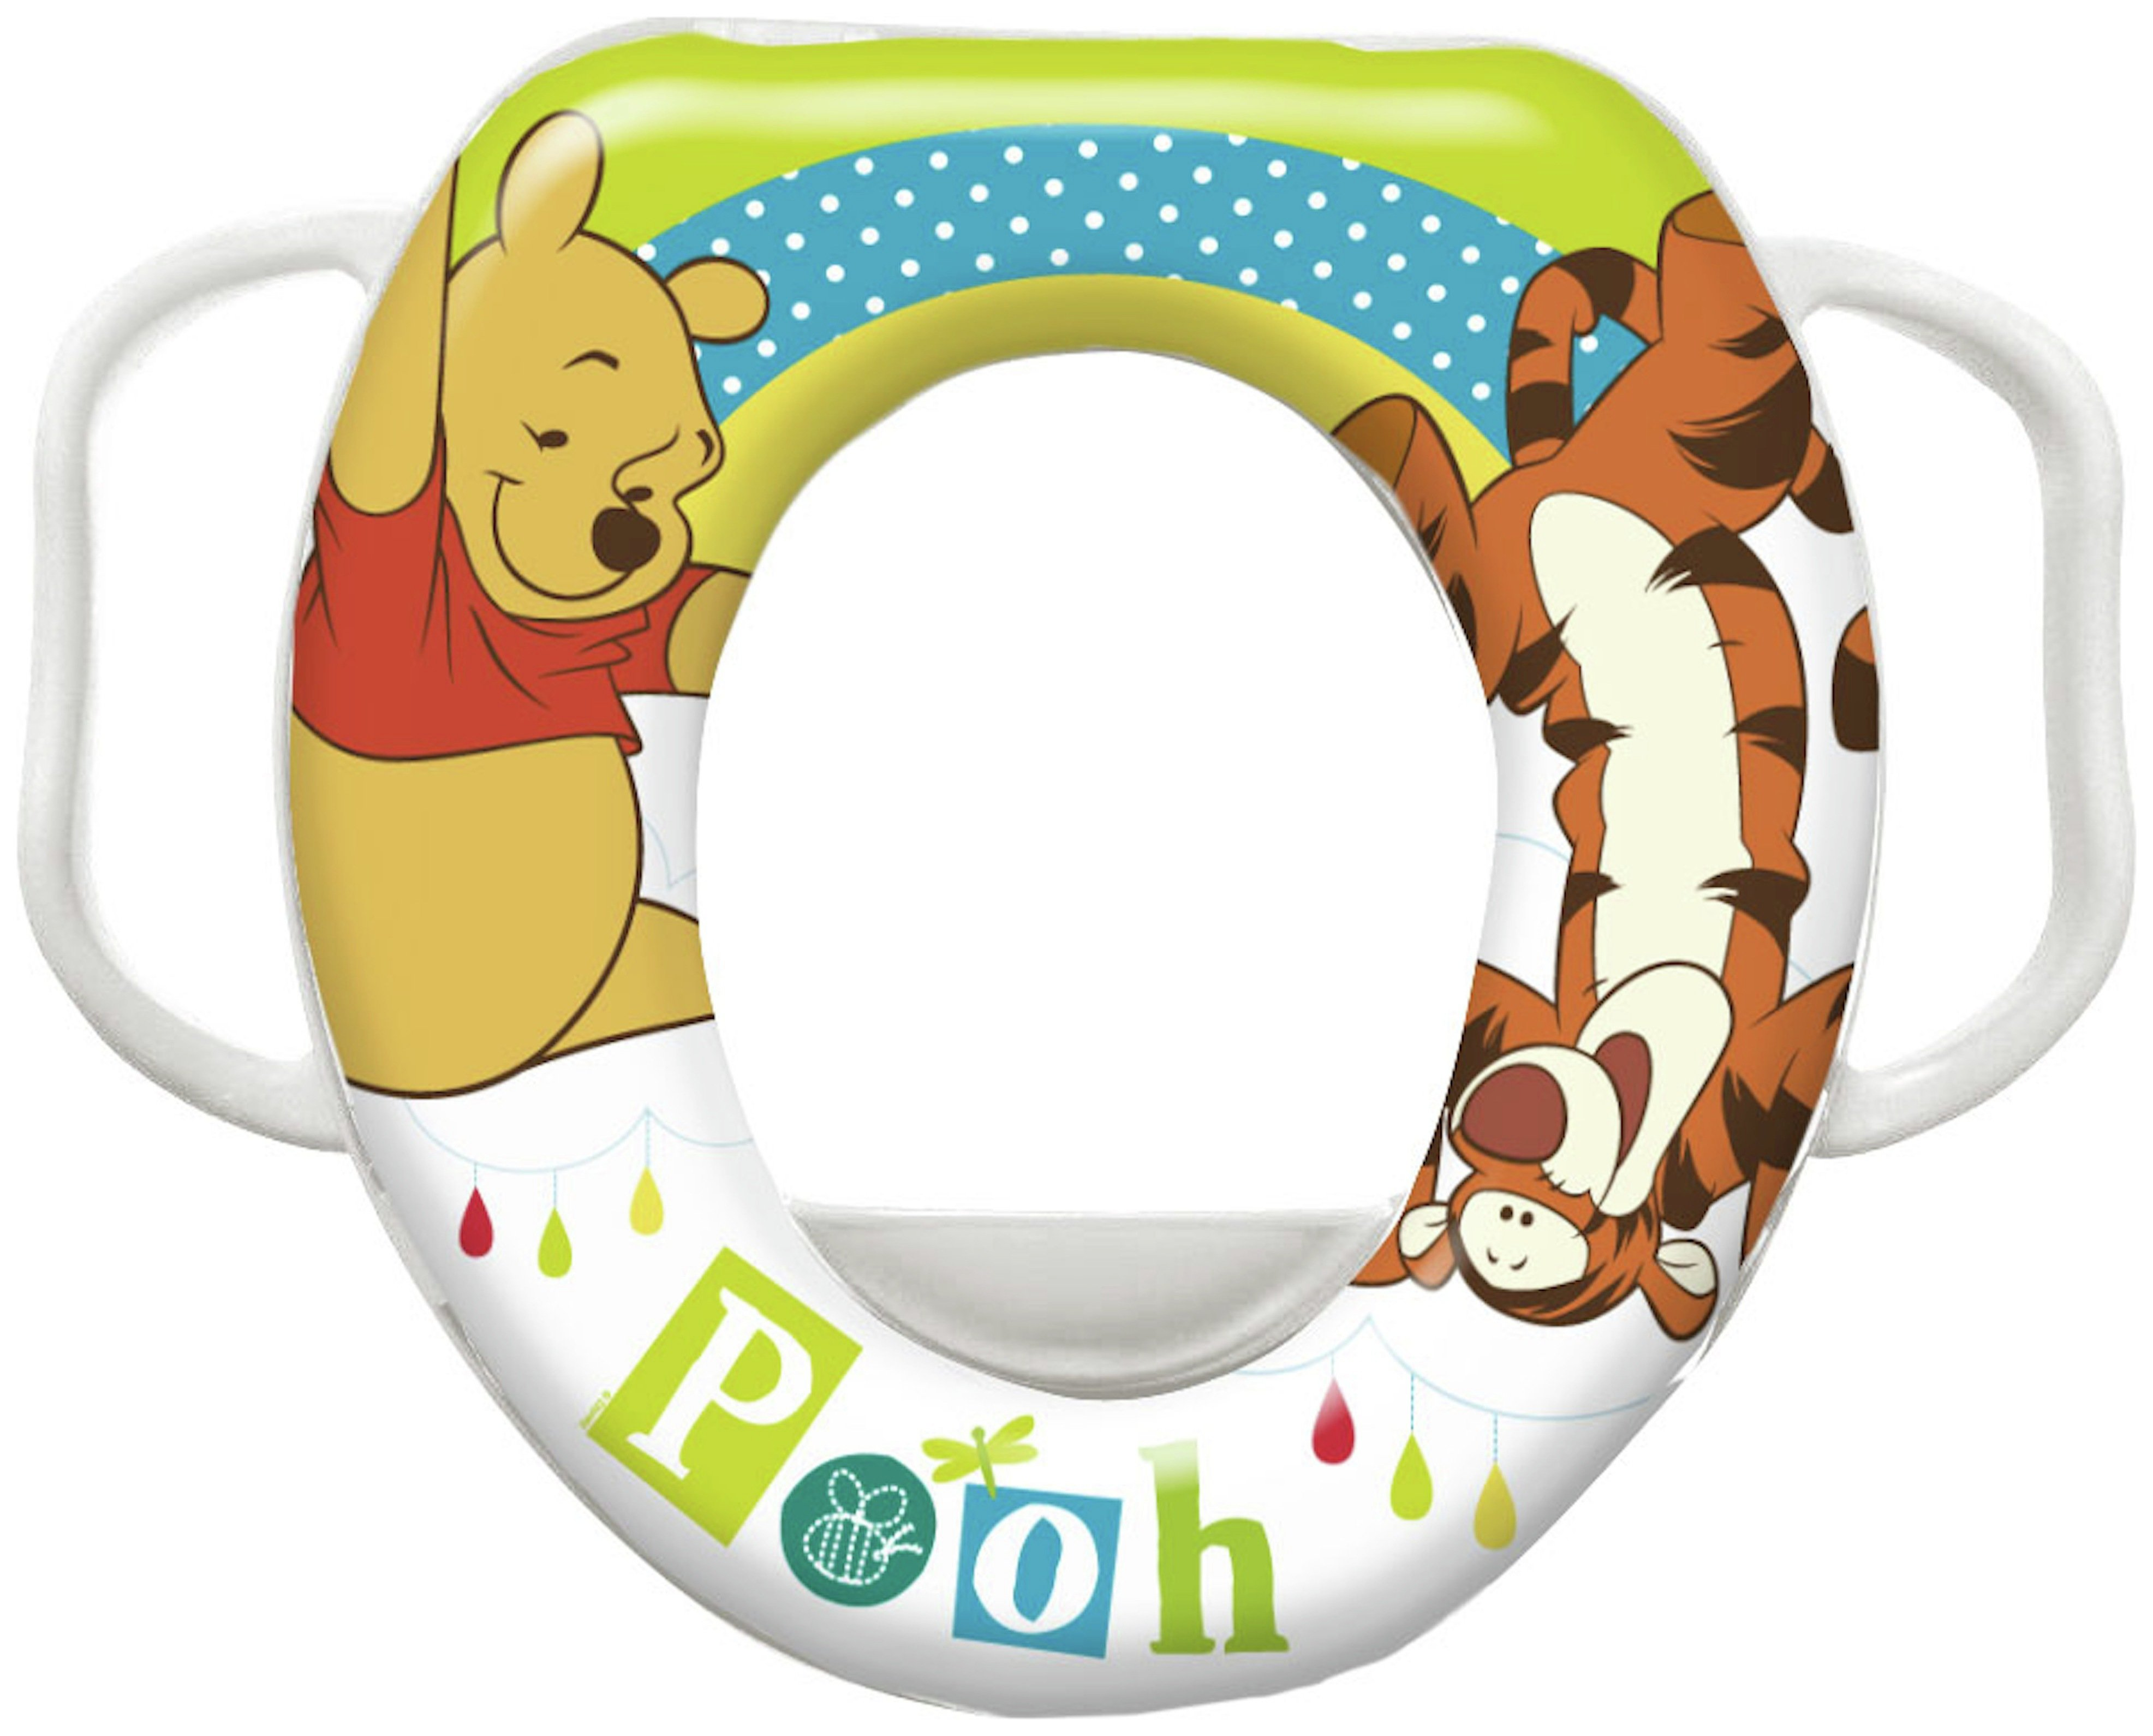 Image of Disney - Winnie the Pooh Soft Padded - Toilet Seat